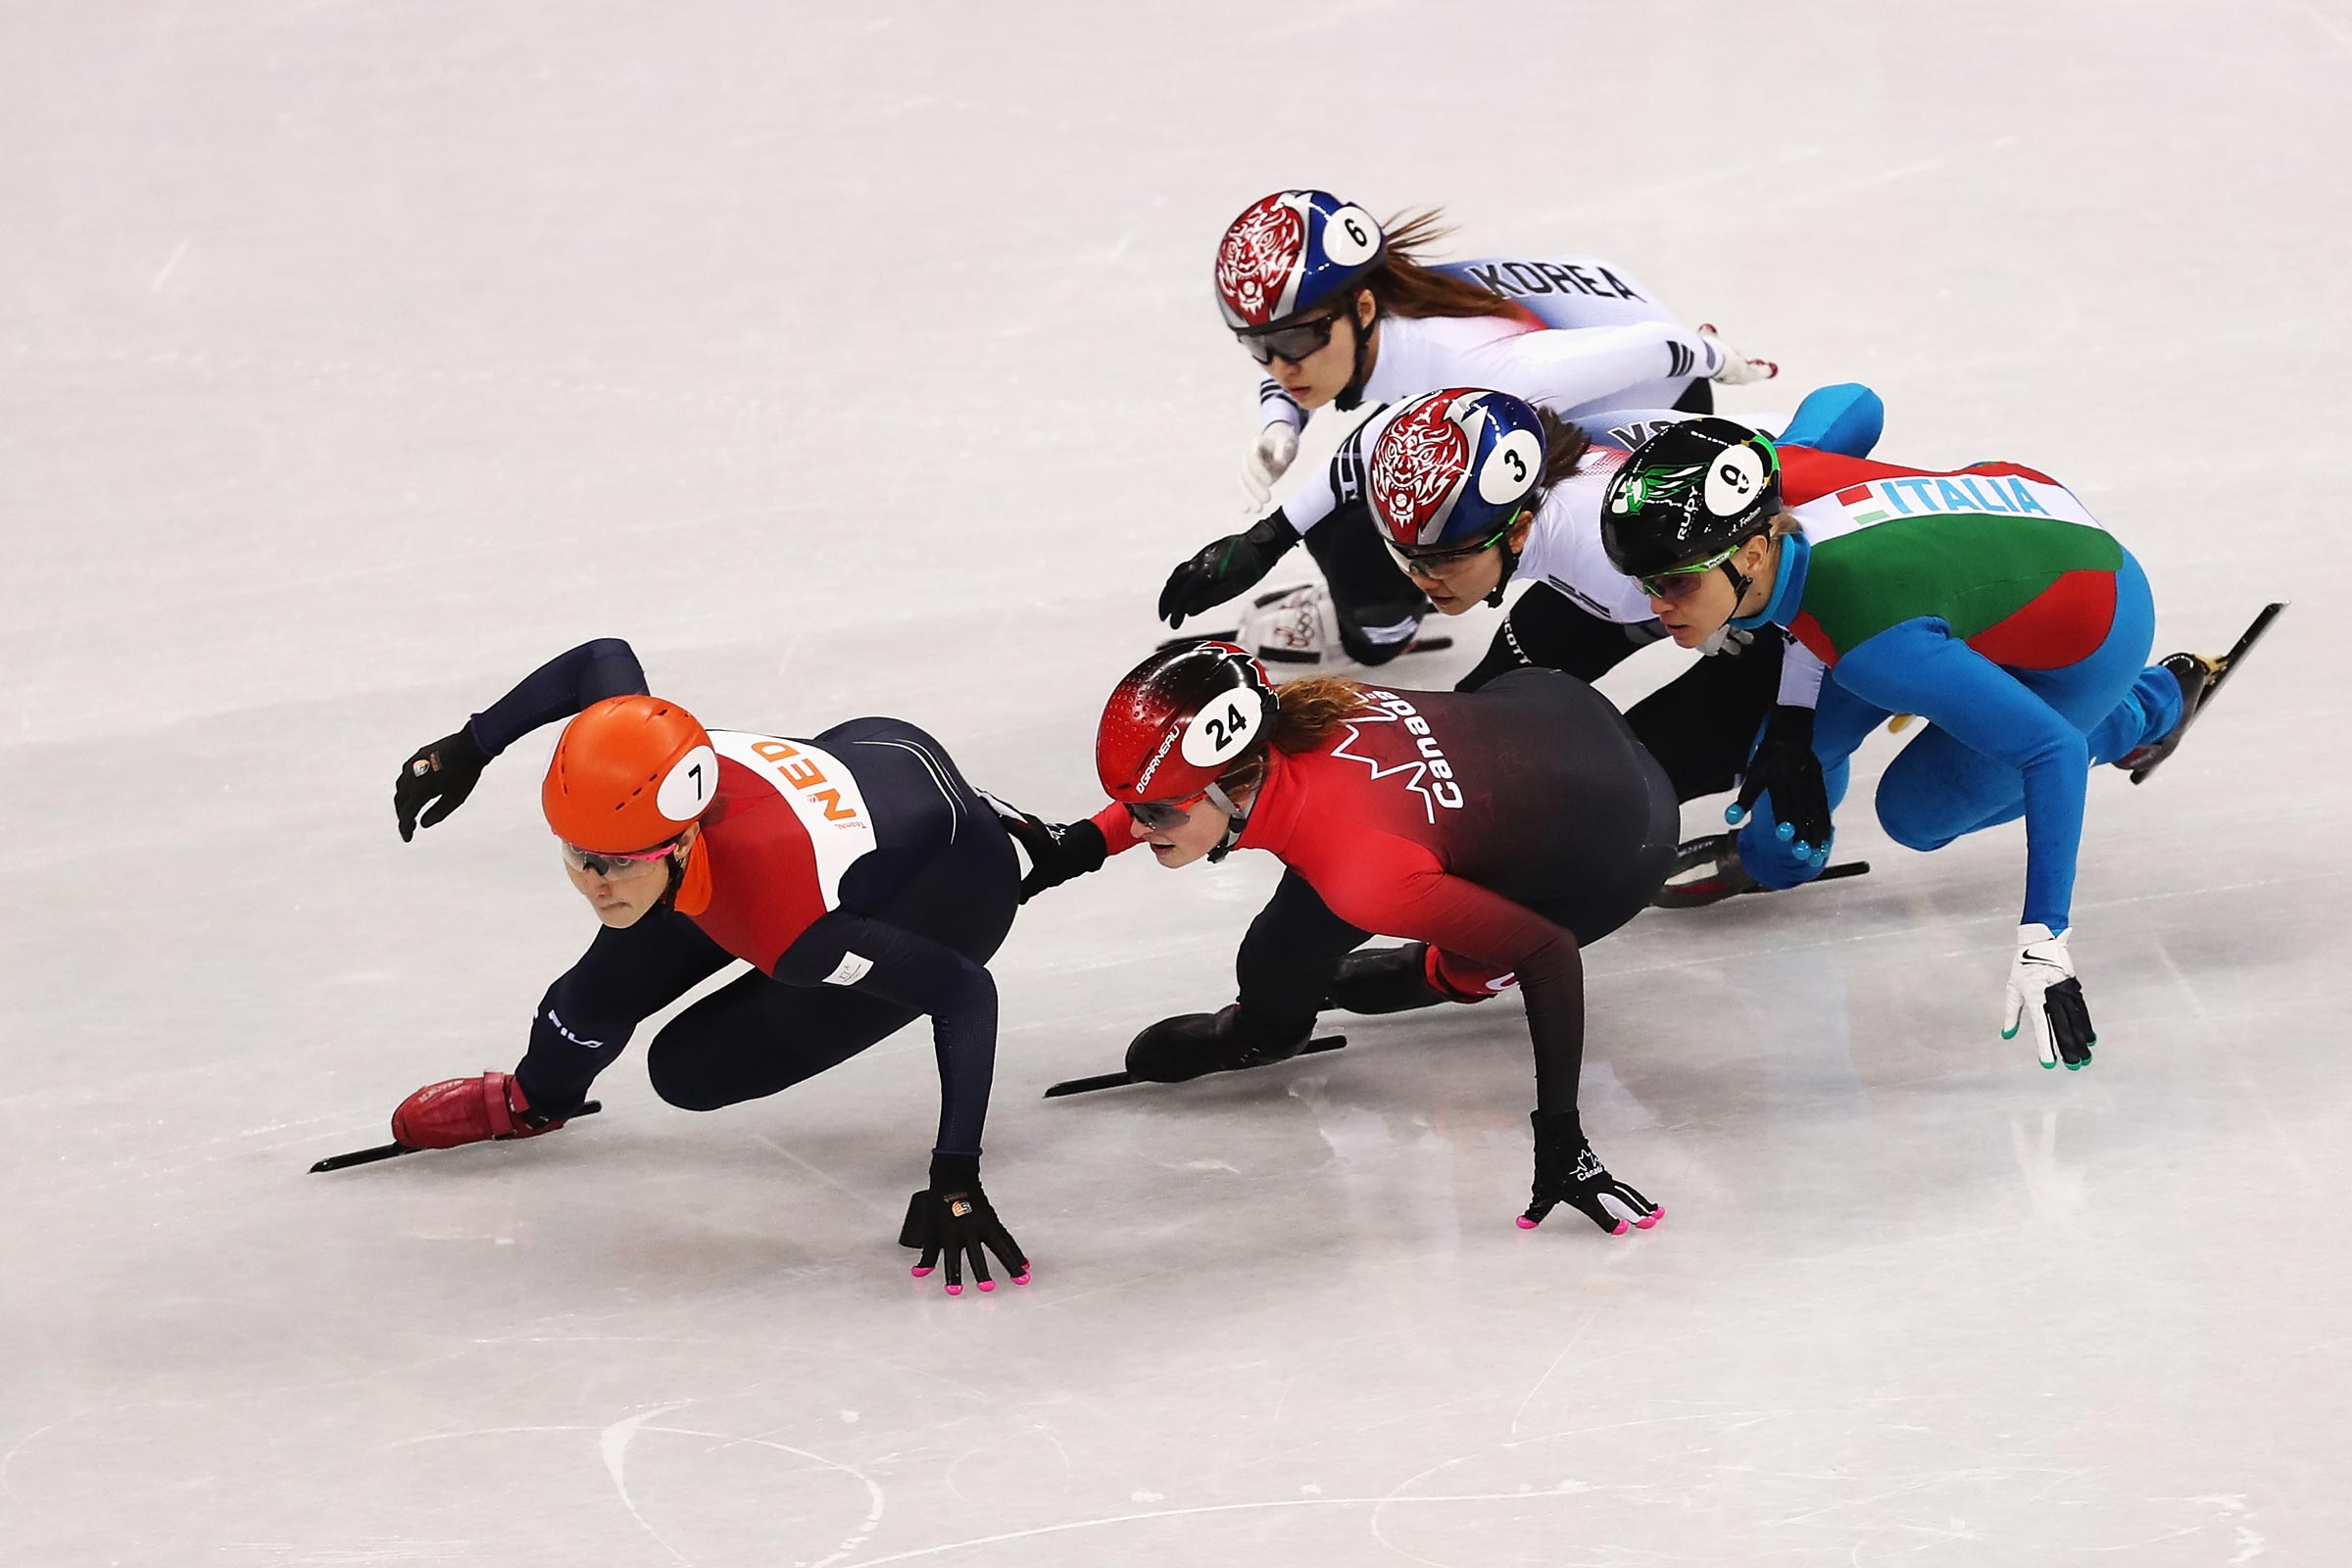 Short Track Speed Skating - Ladies' 1000m